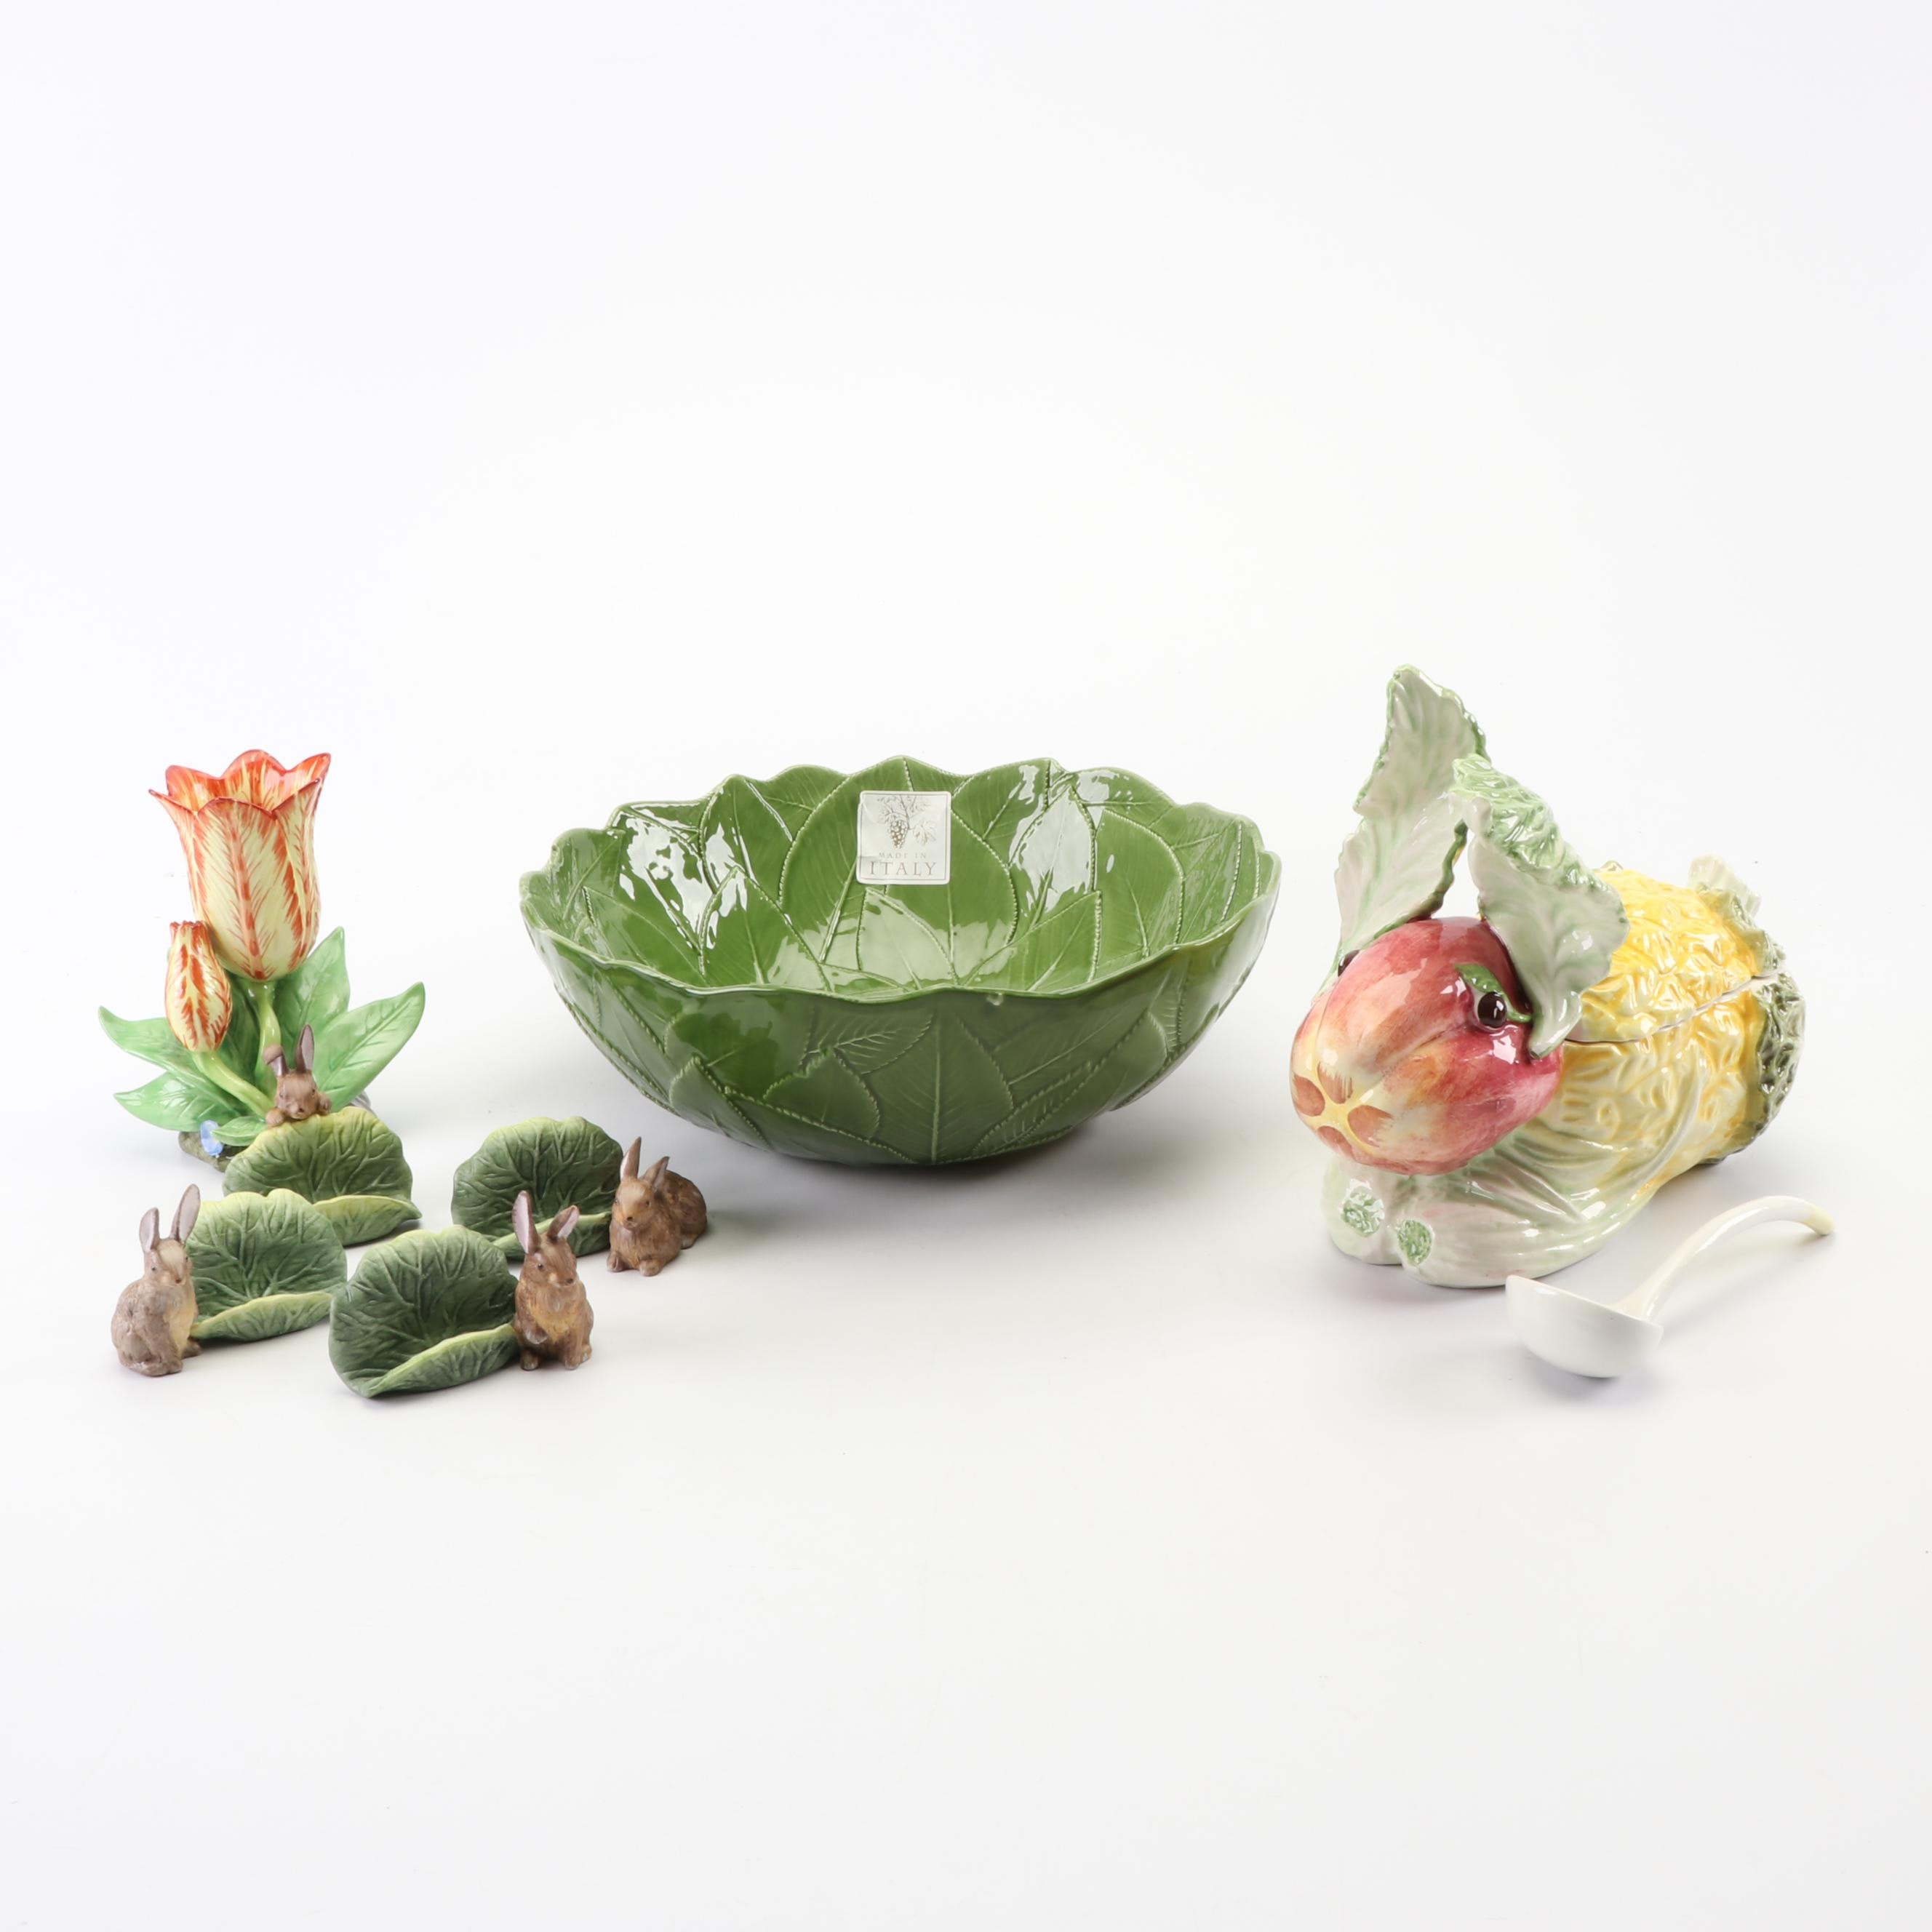 Hand-Painted Rabbit and Lettuce Themed Porcelain Serverware including Mottahedeh